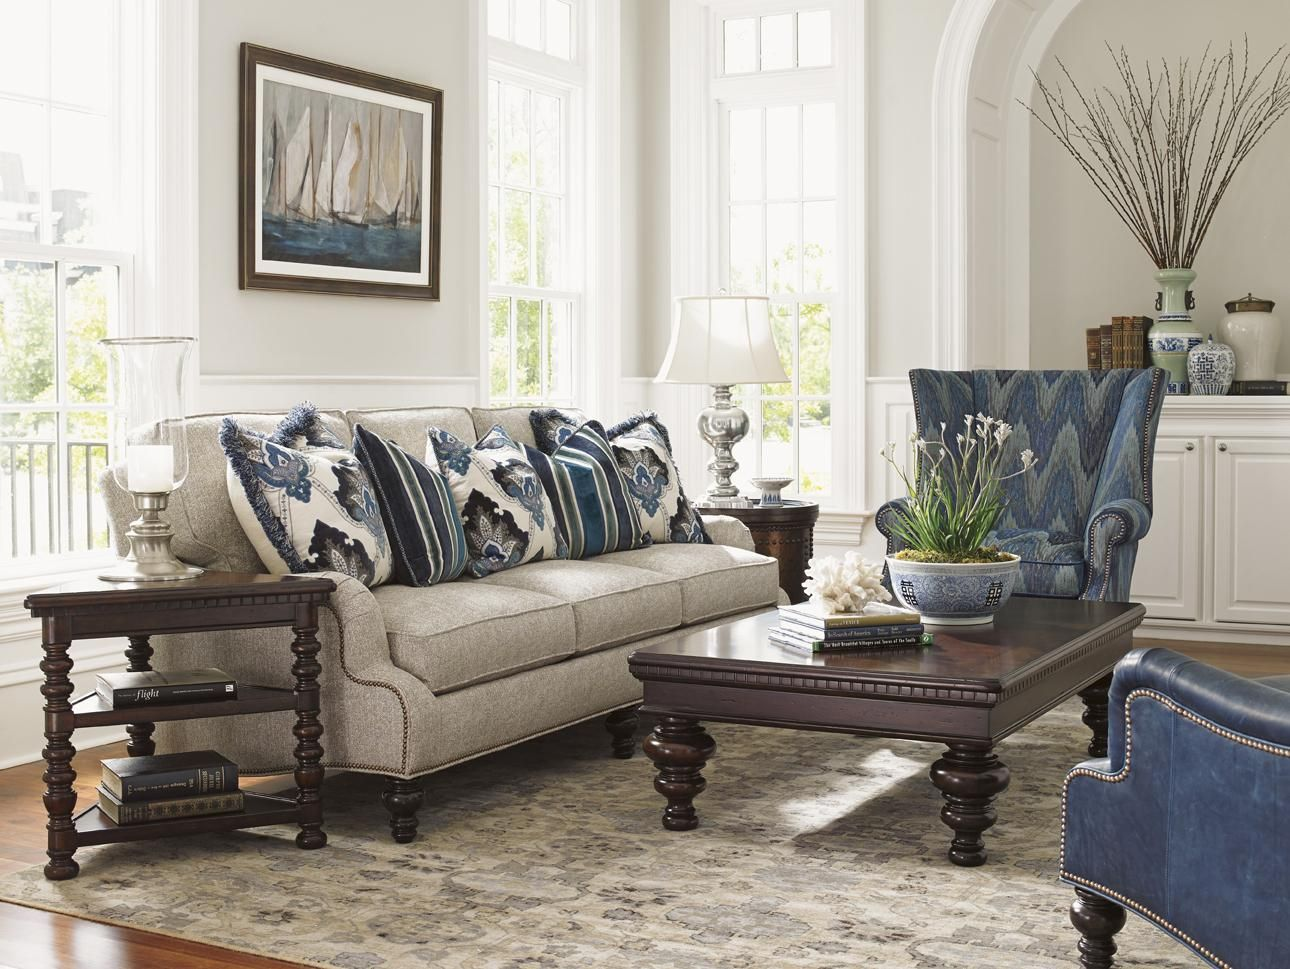 Tommy Bahama Living Room Modern Ideas With Brown Furniture Kilimanjaro Stationary Group By Home At Belfort